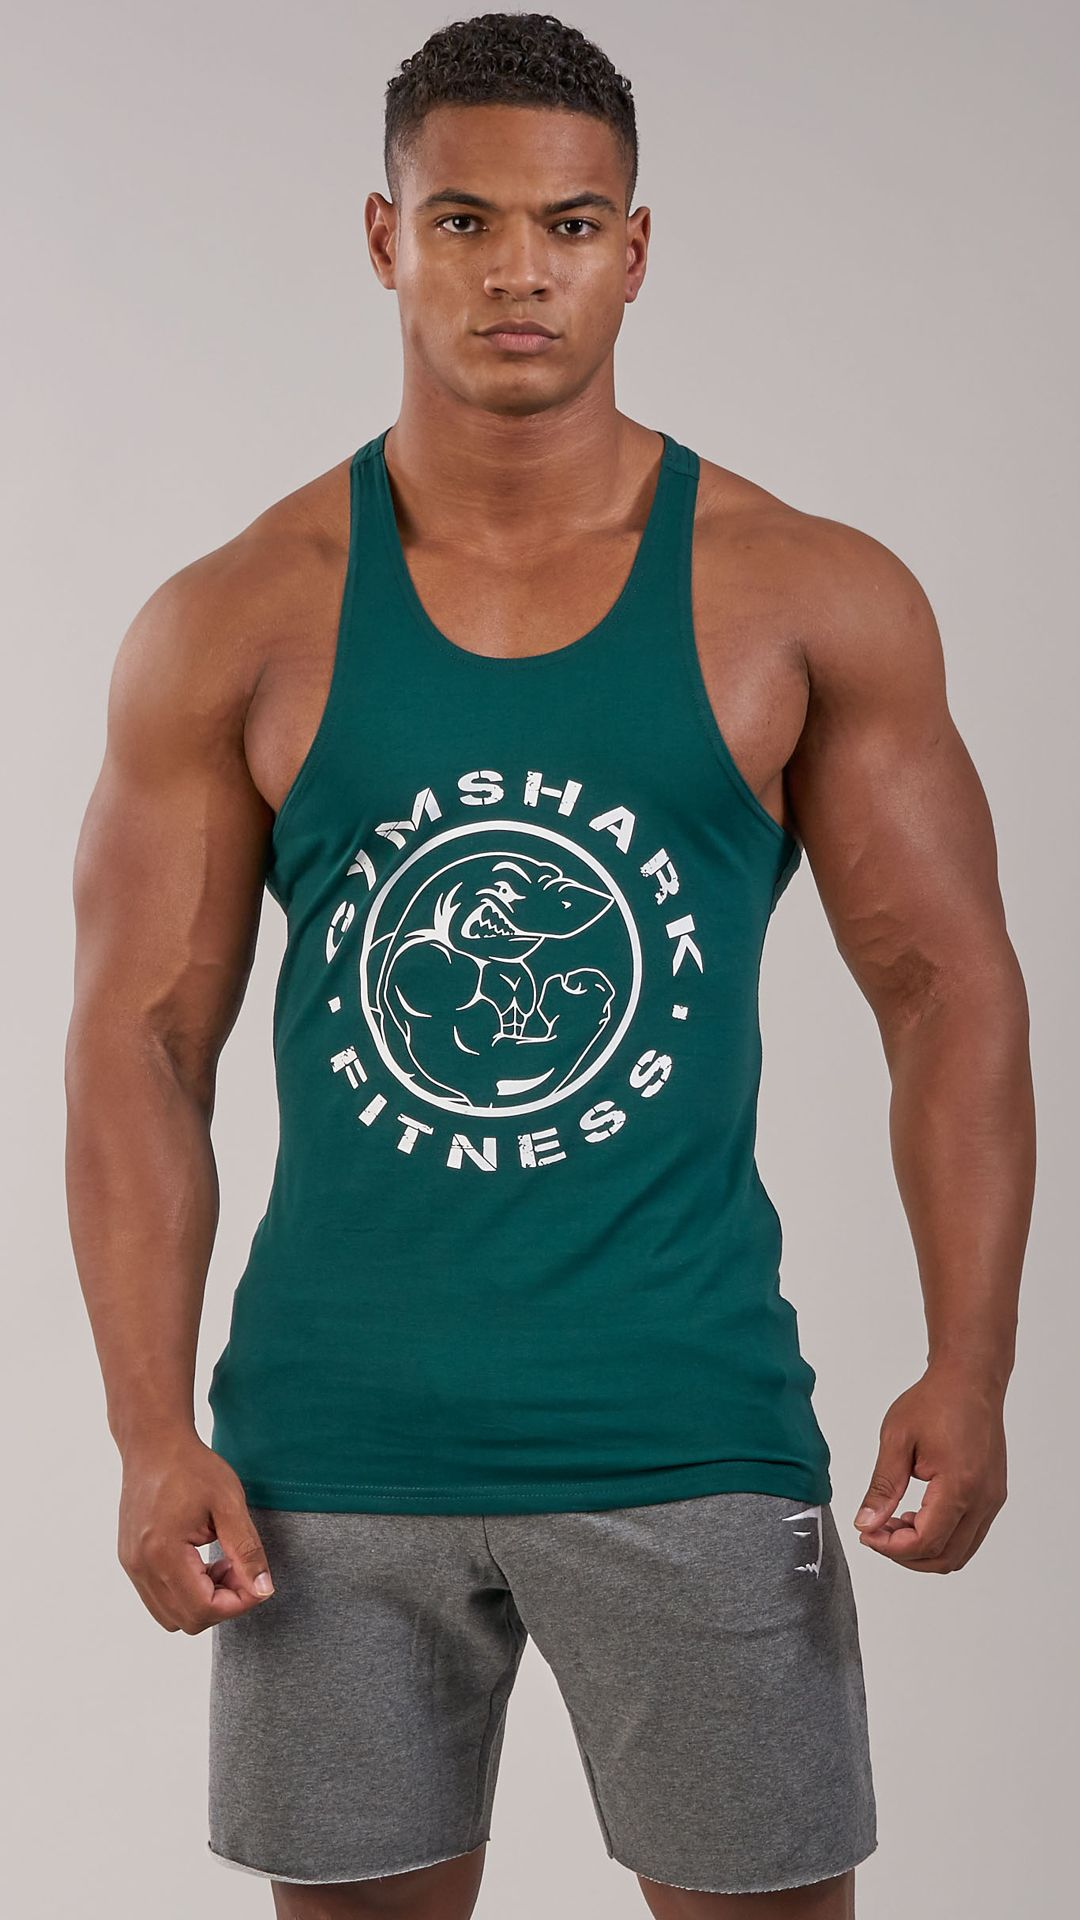 ff51fcc76c002 The Men s Fitness Gym Stringer